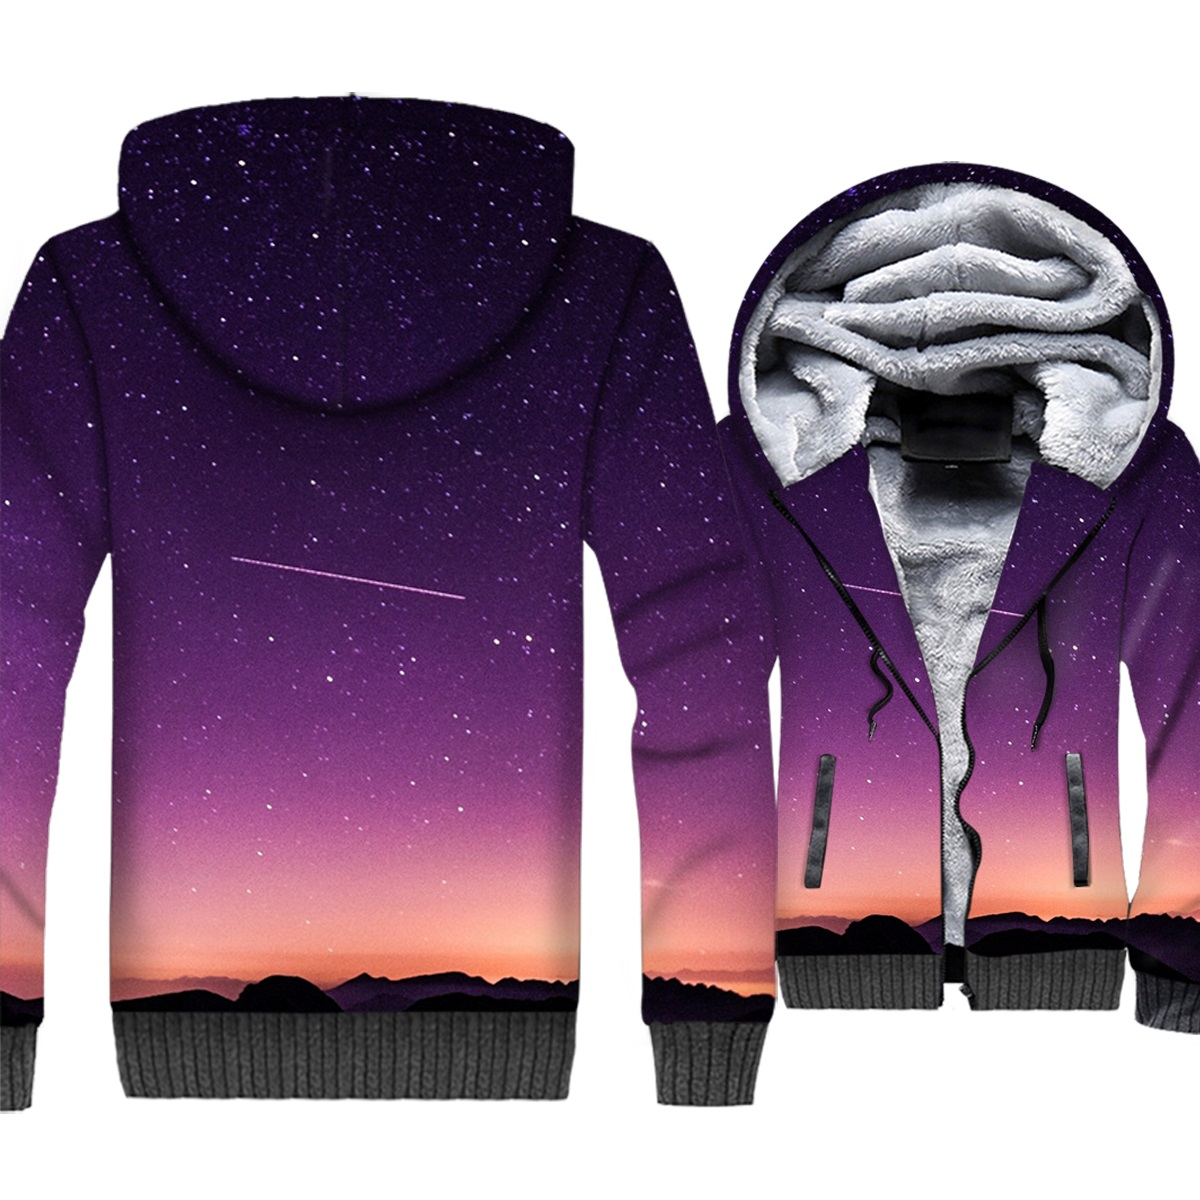 Space Galaxy 3D Jackets Men Hoodies Colorful Stars Nebula Sweatshirts Winter Thick Fleece Harajuku Paisley Nebula Meteor Coat